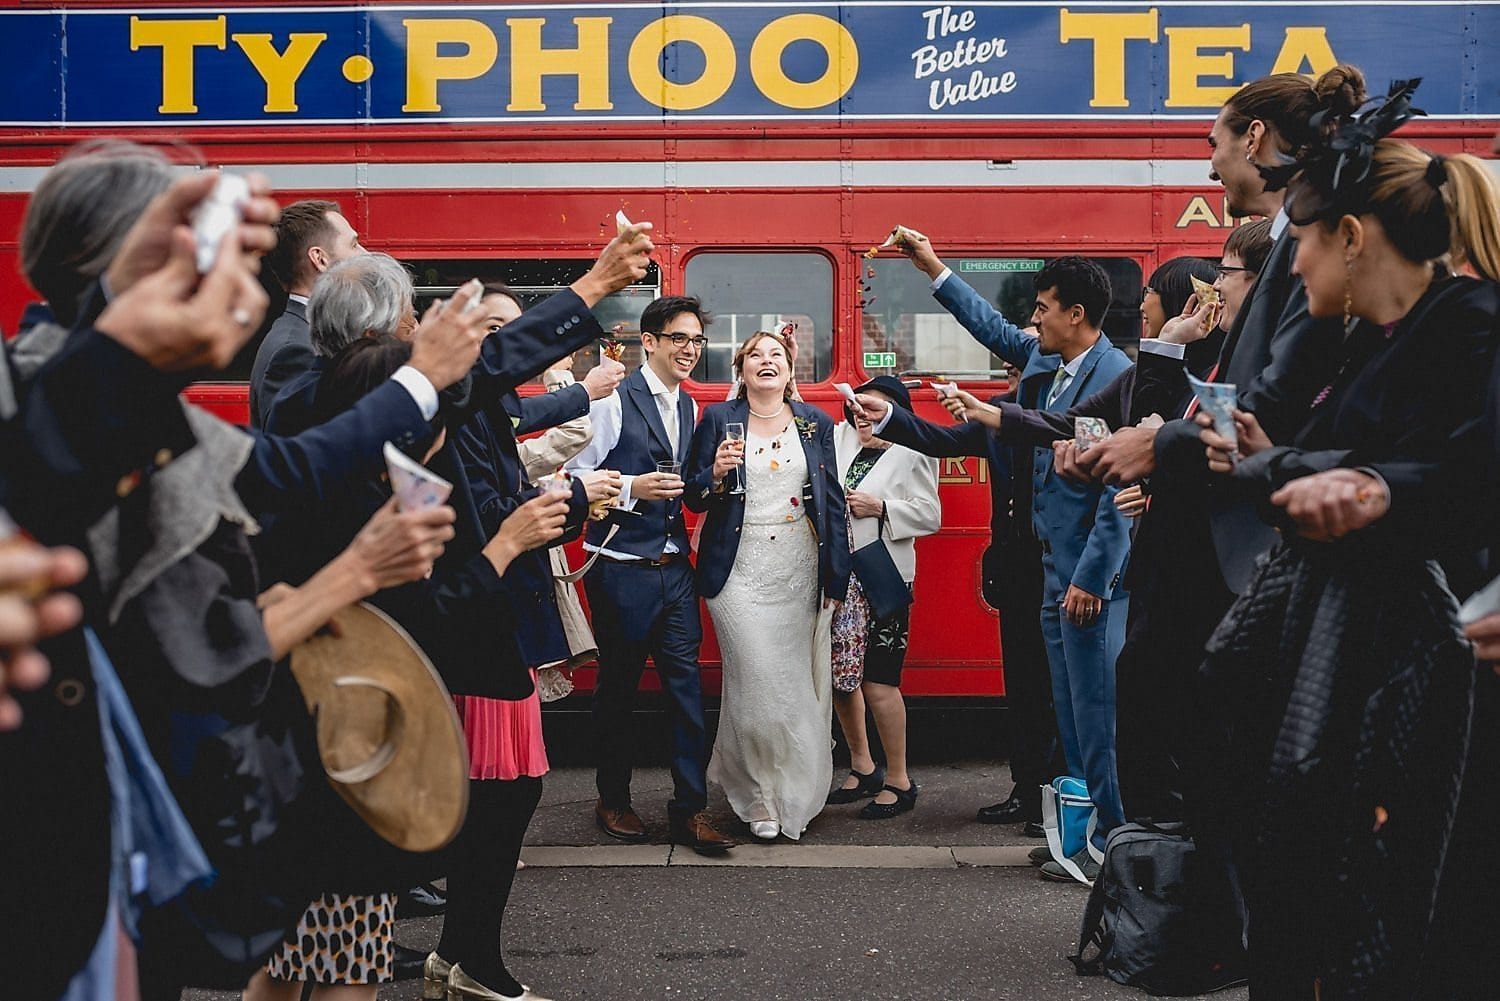 Bride and groom start the confetti line in front of the red bus